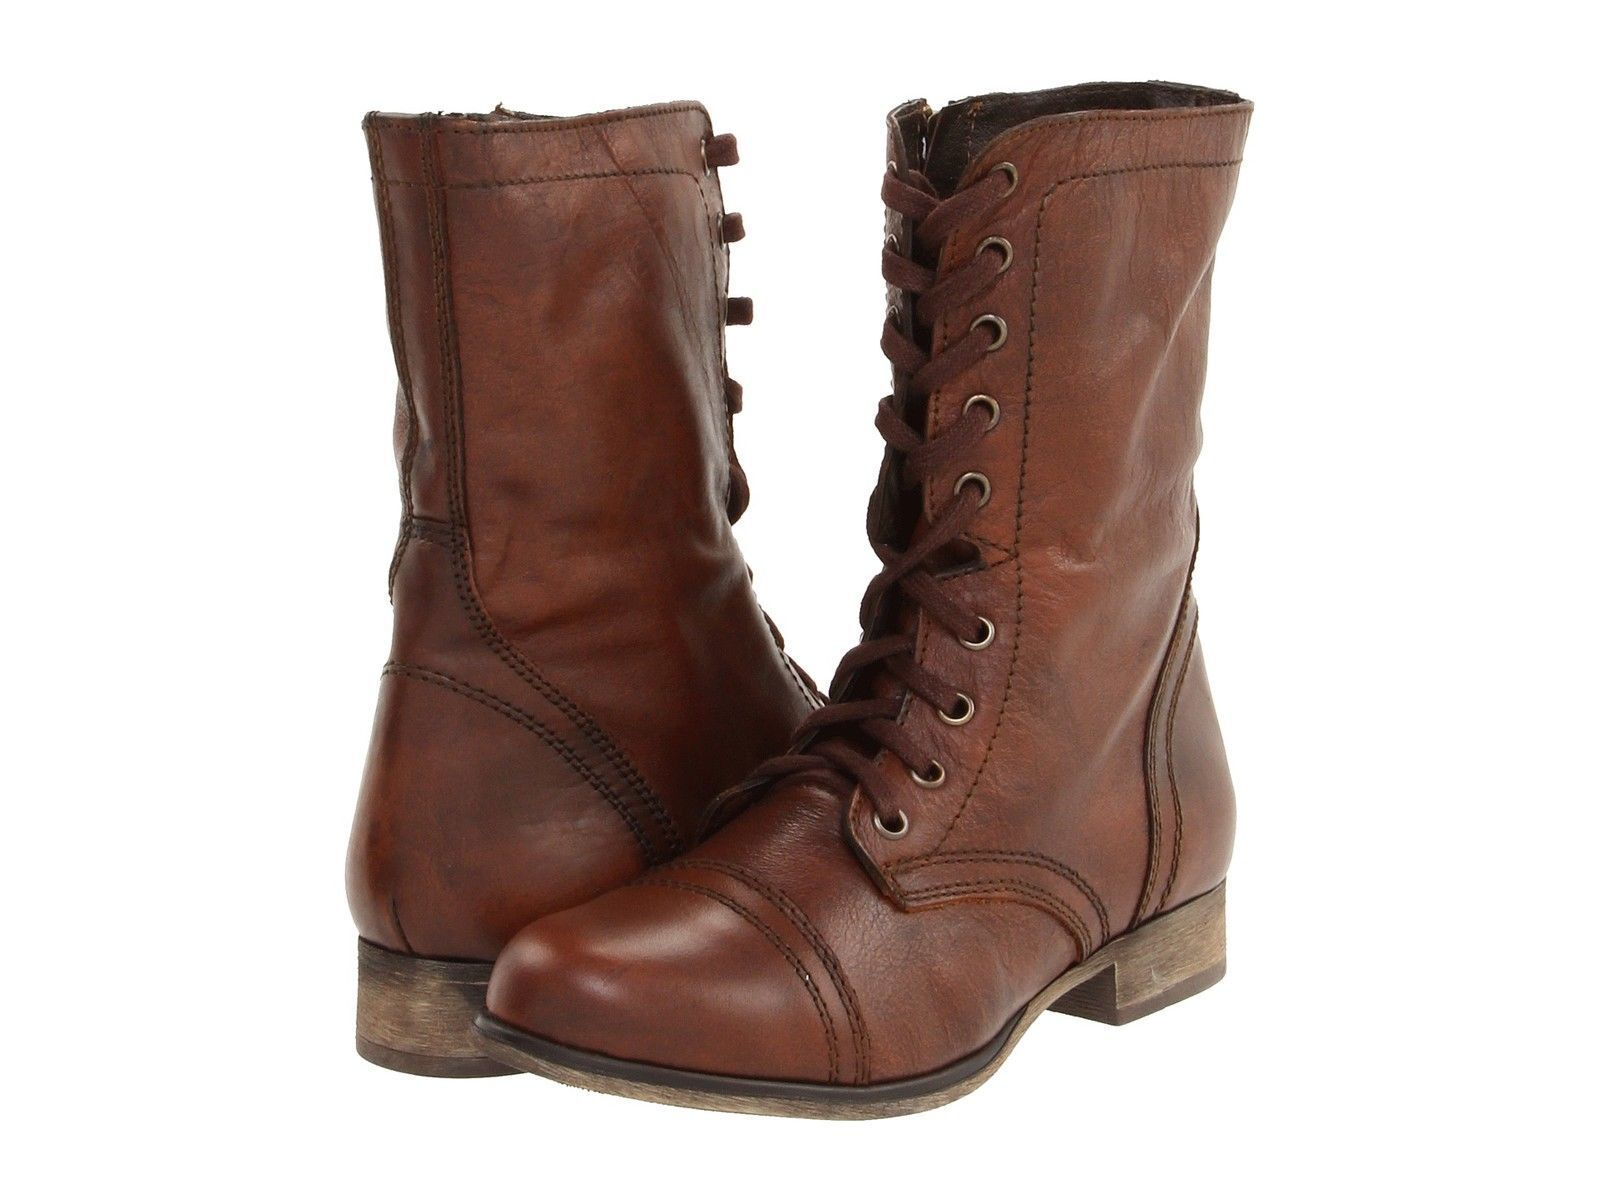 Top 10 Riding Boots | eBay